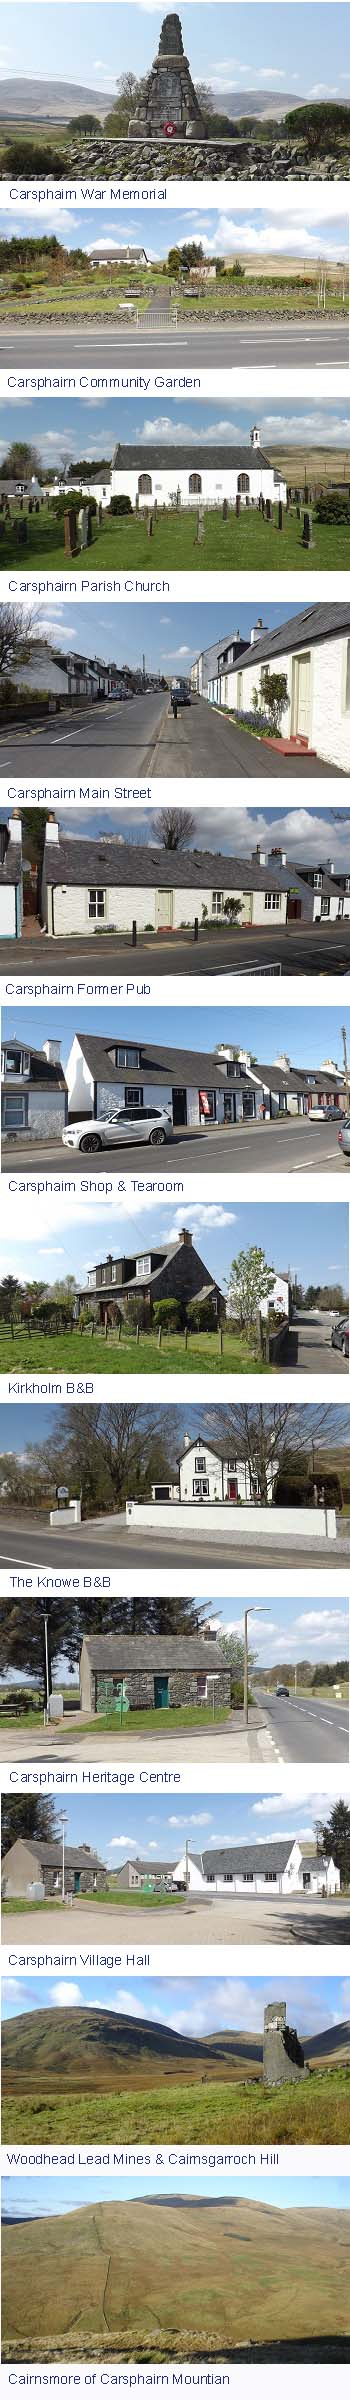 Carsphairn Images